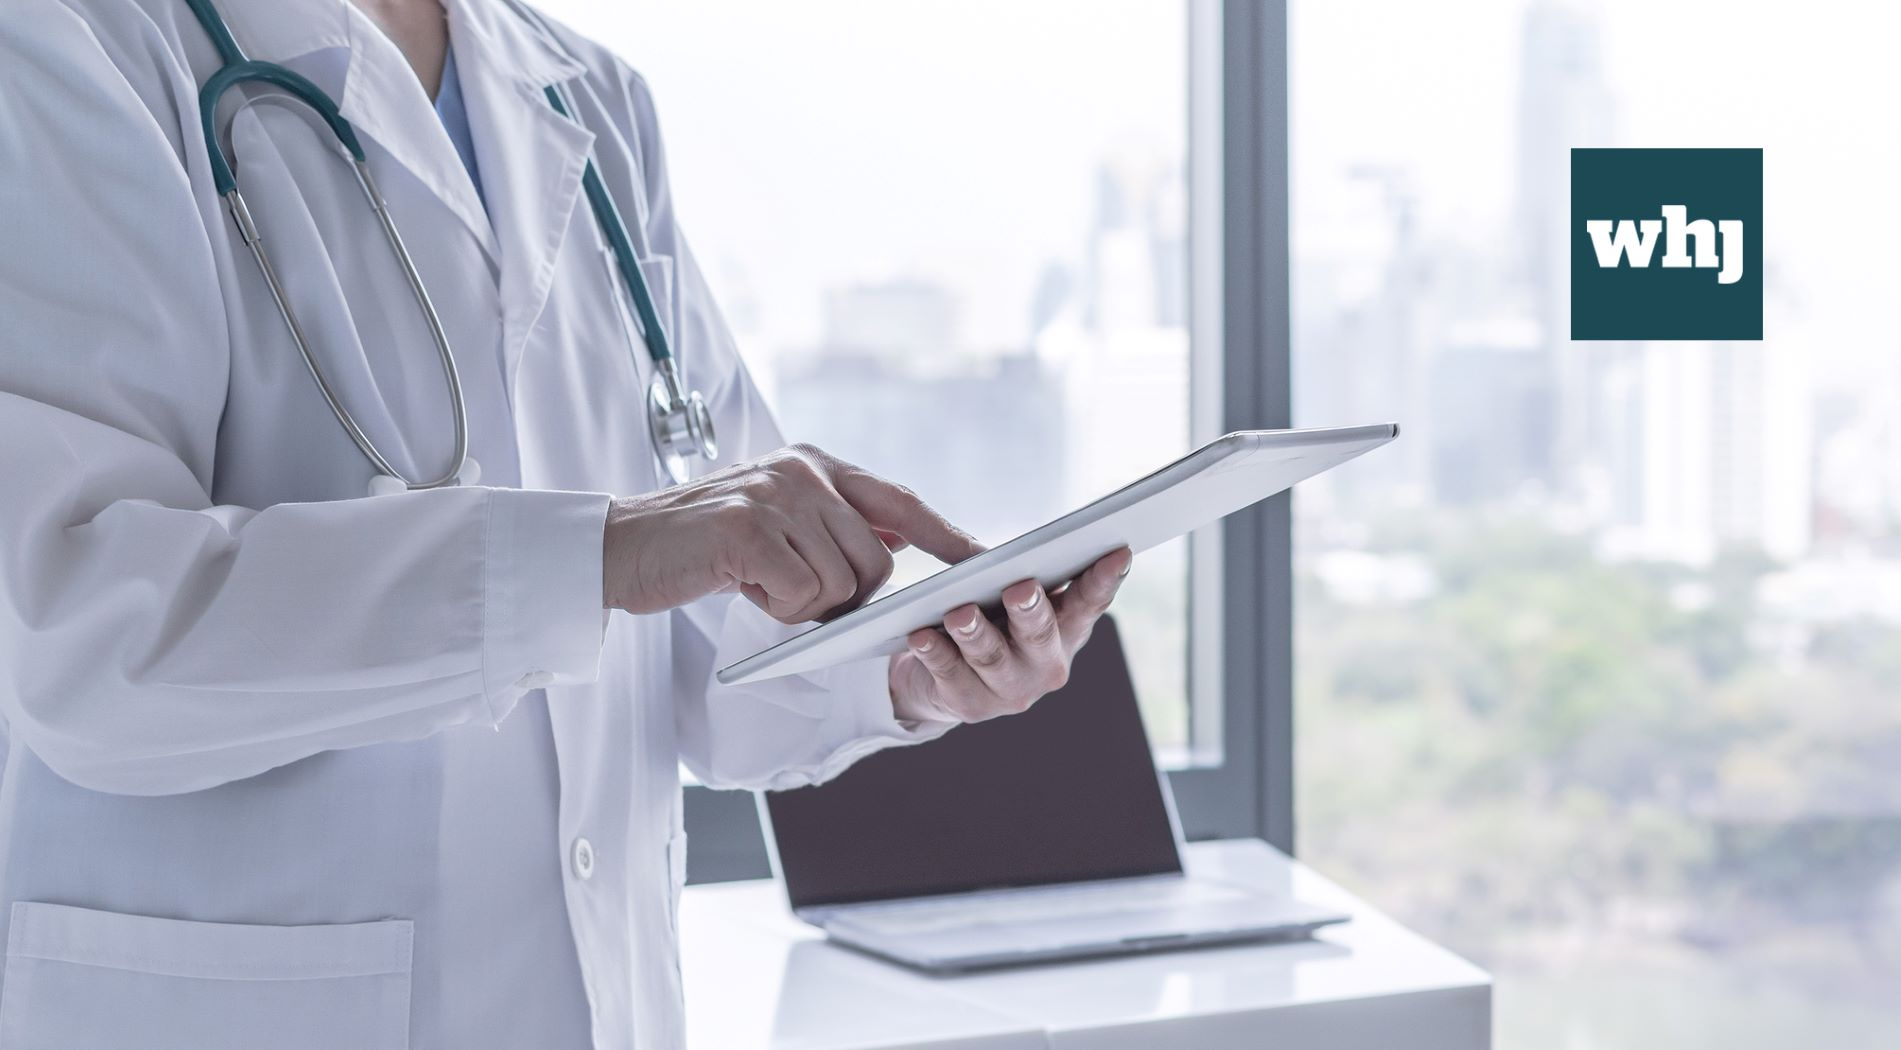 Artificial intelligence development in the NHS to receive £250m boost